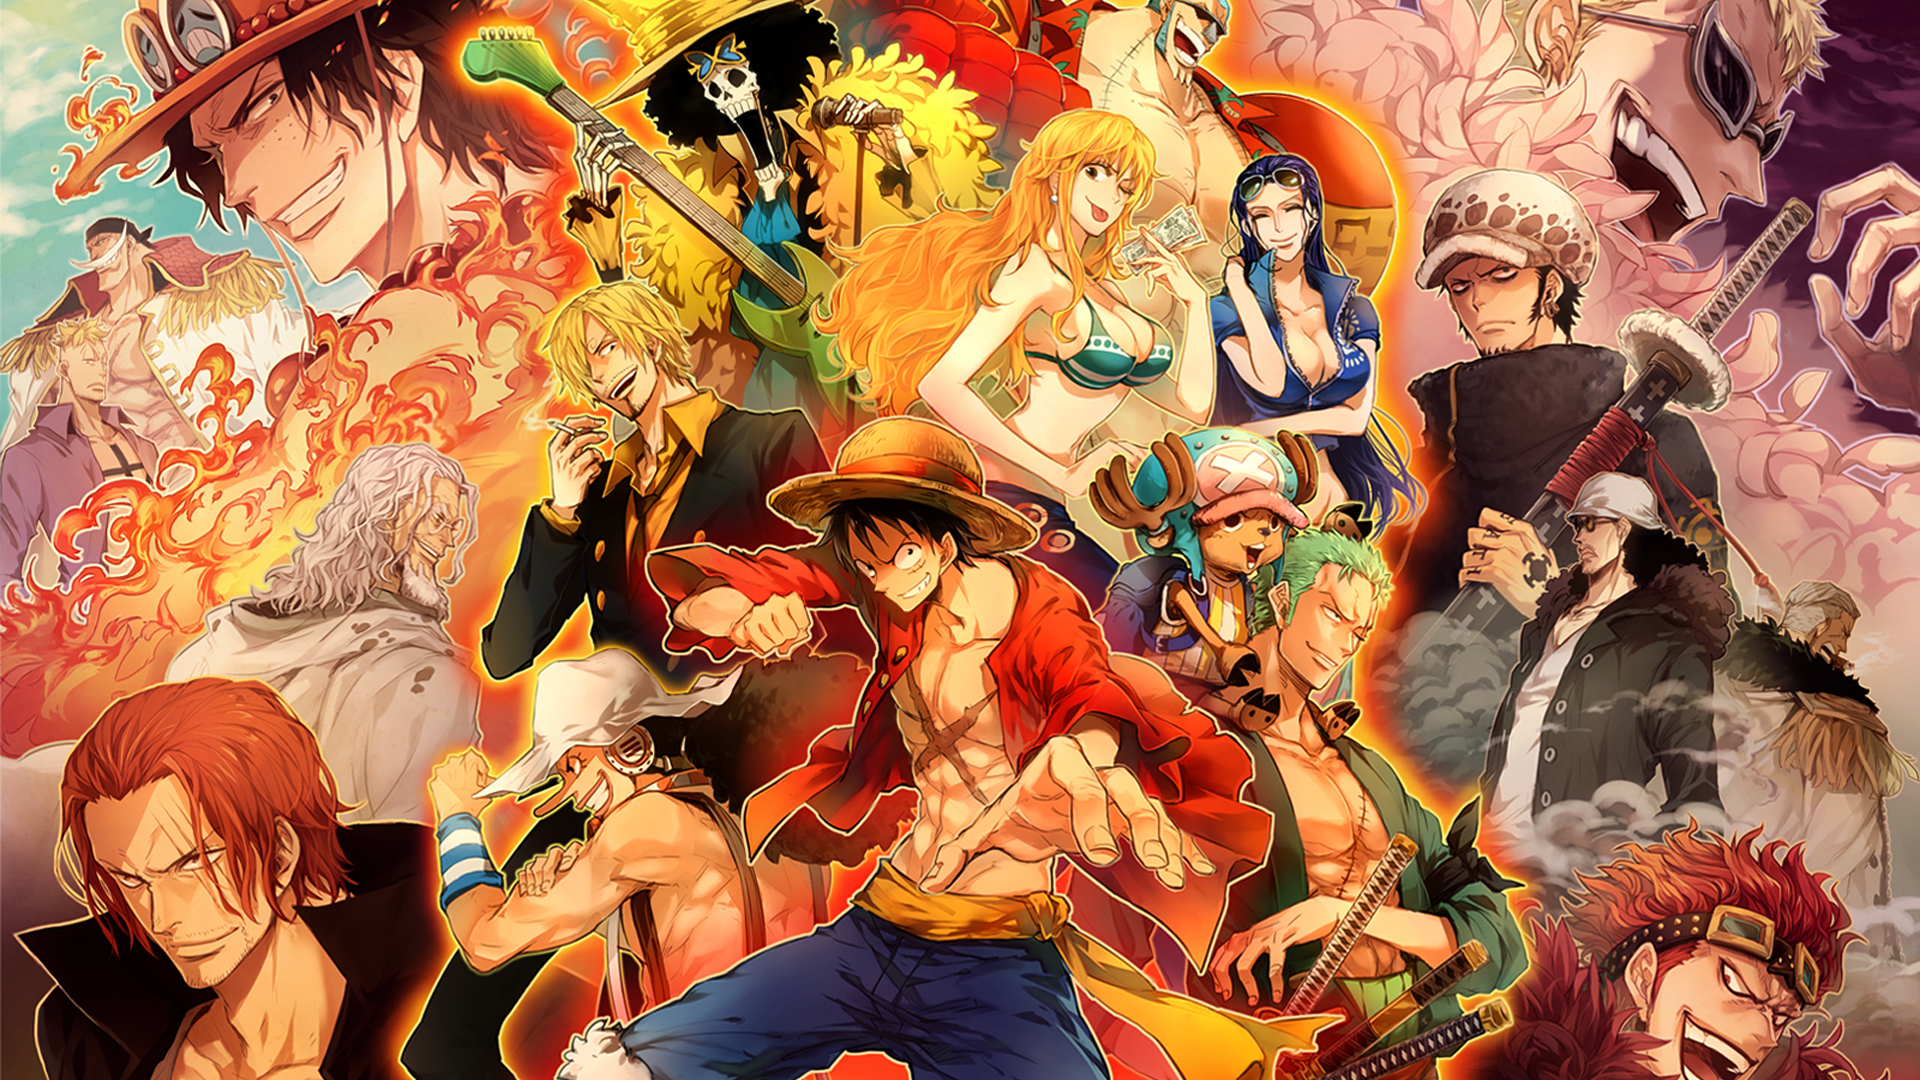 One Piece Encyclopedia is a database that anyone can edit about the Shonen Jump anime and manga series One Piece created by Eiichiro Oda, that features Monkey D. Luffy and other pirates.